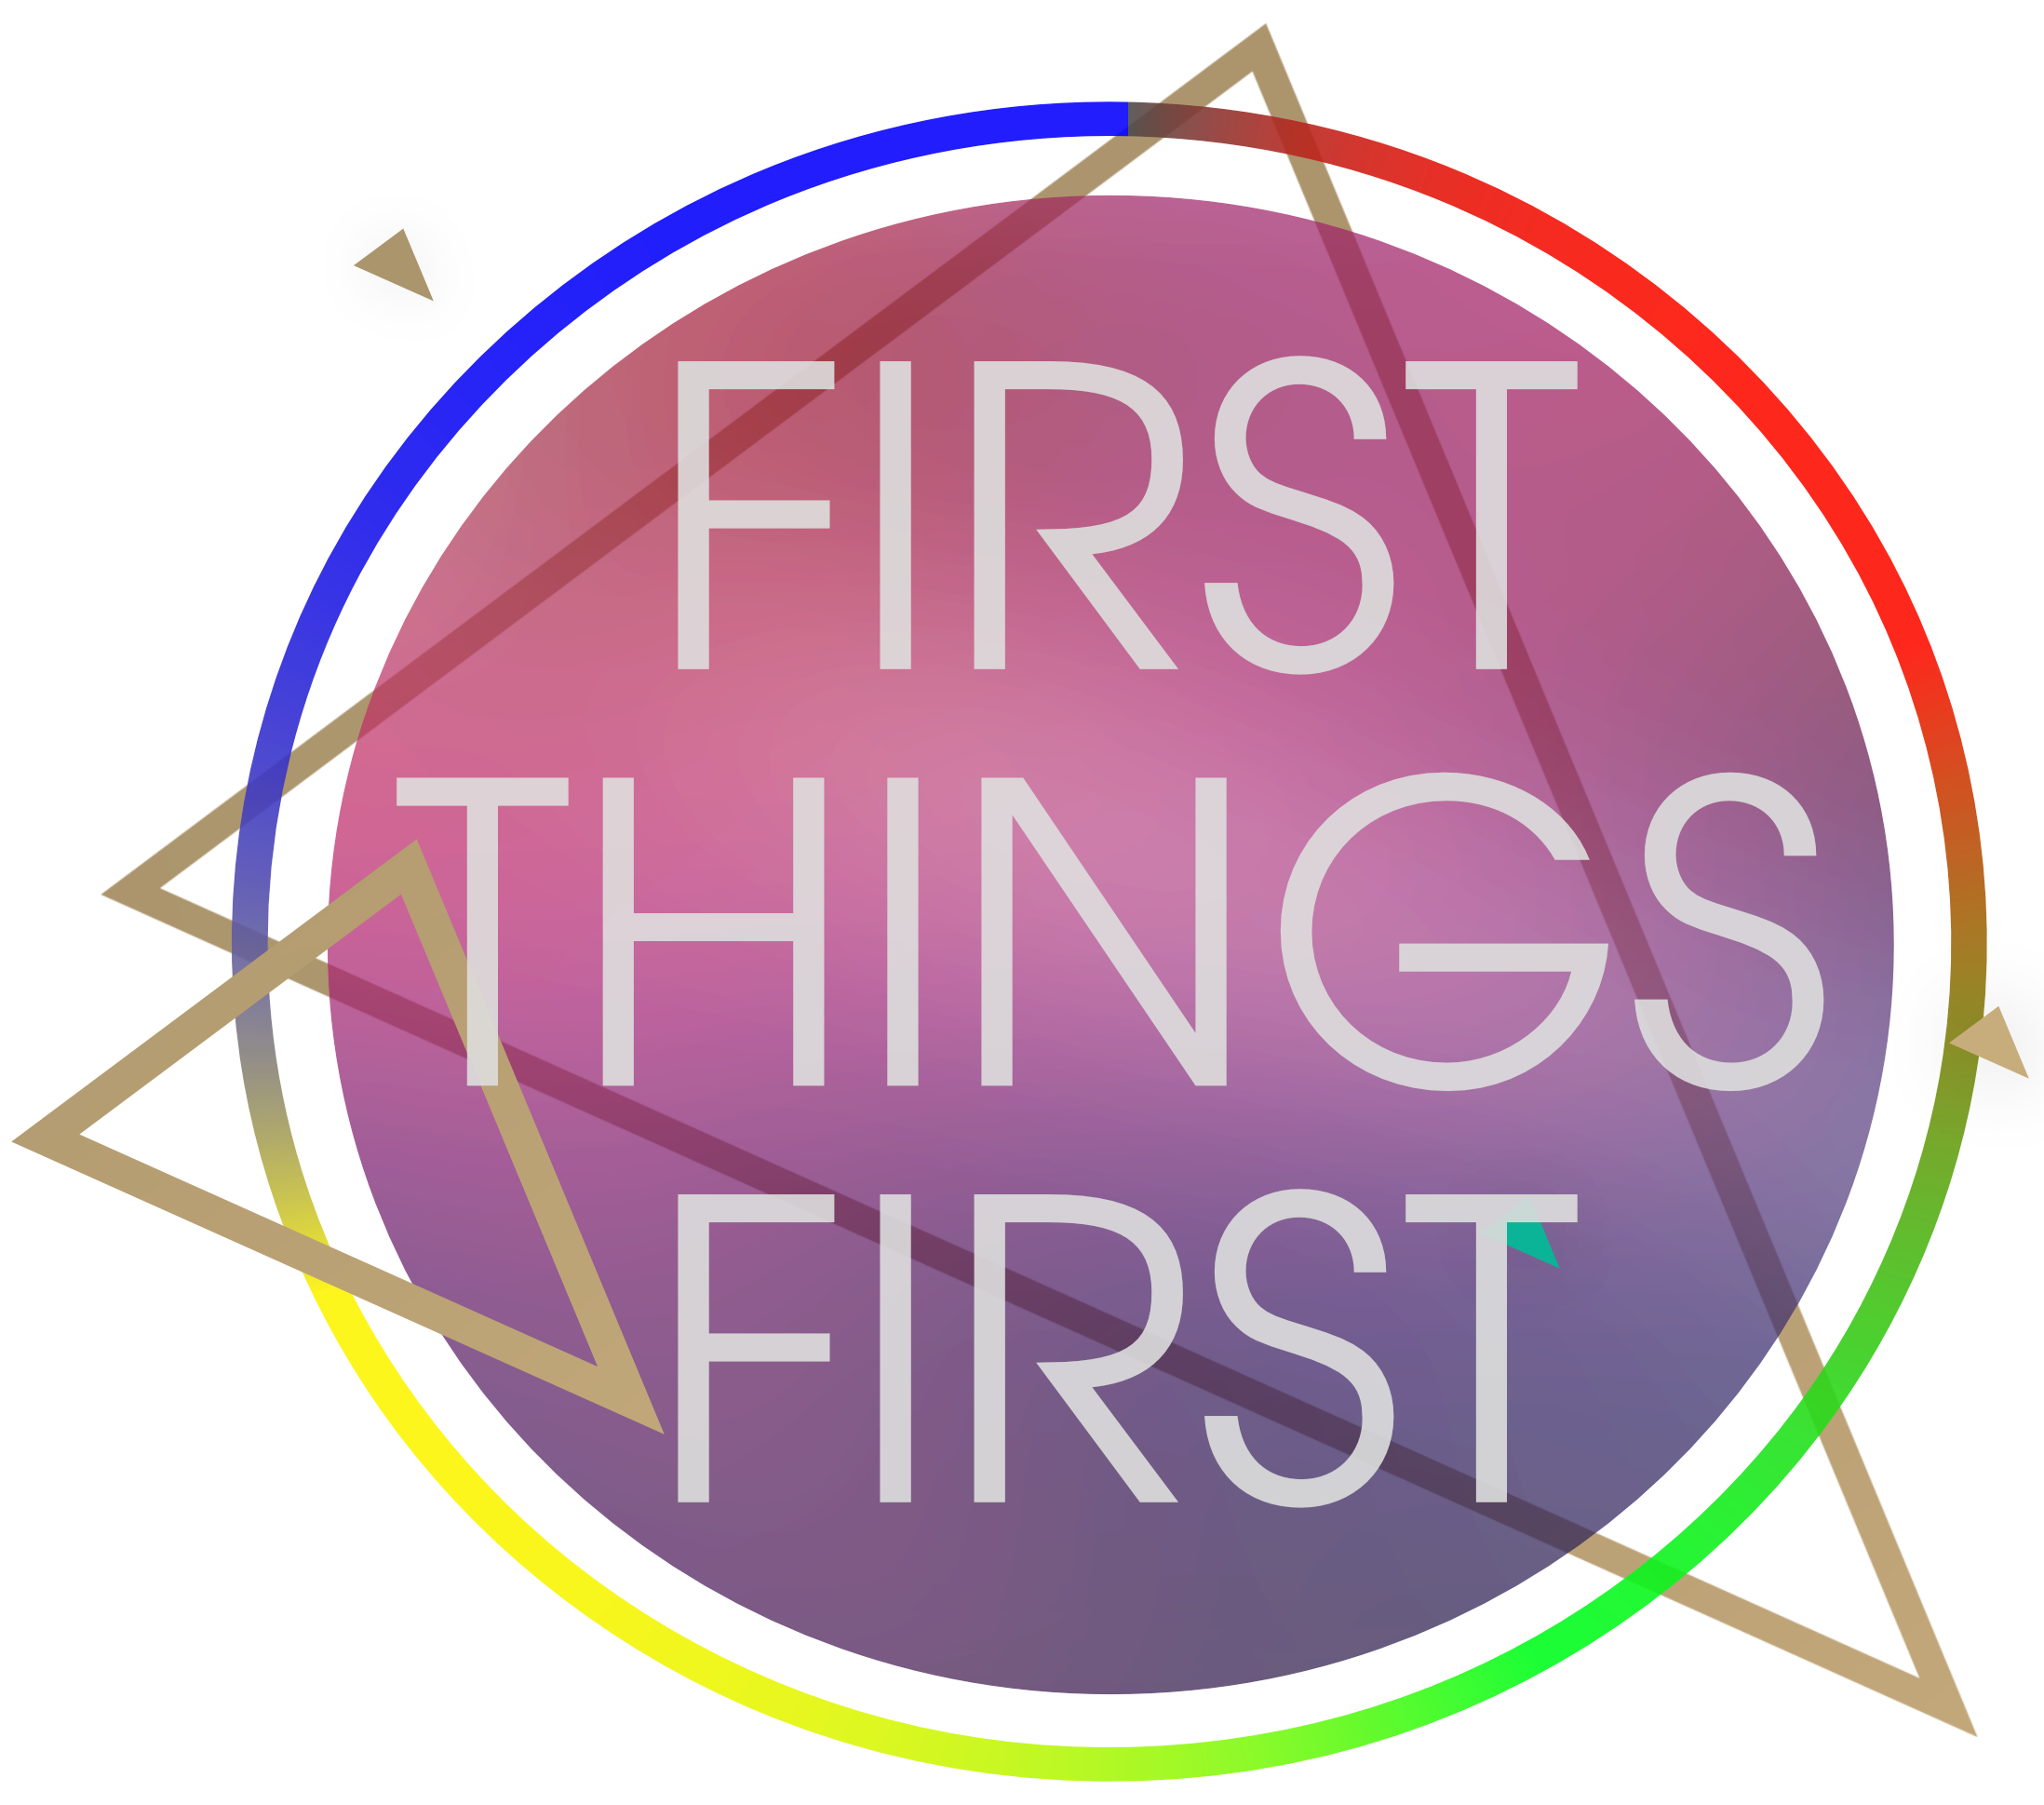 First things first graphic 4